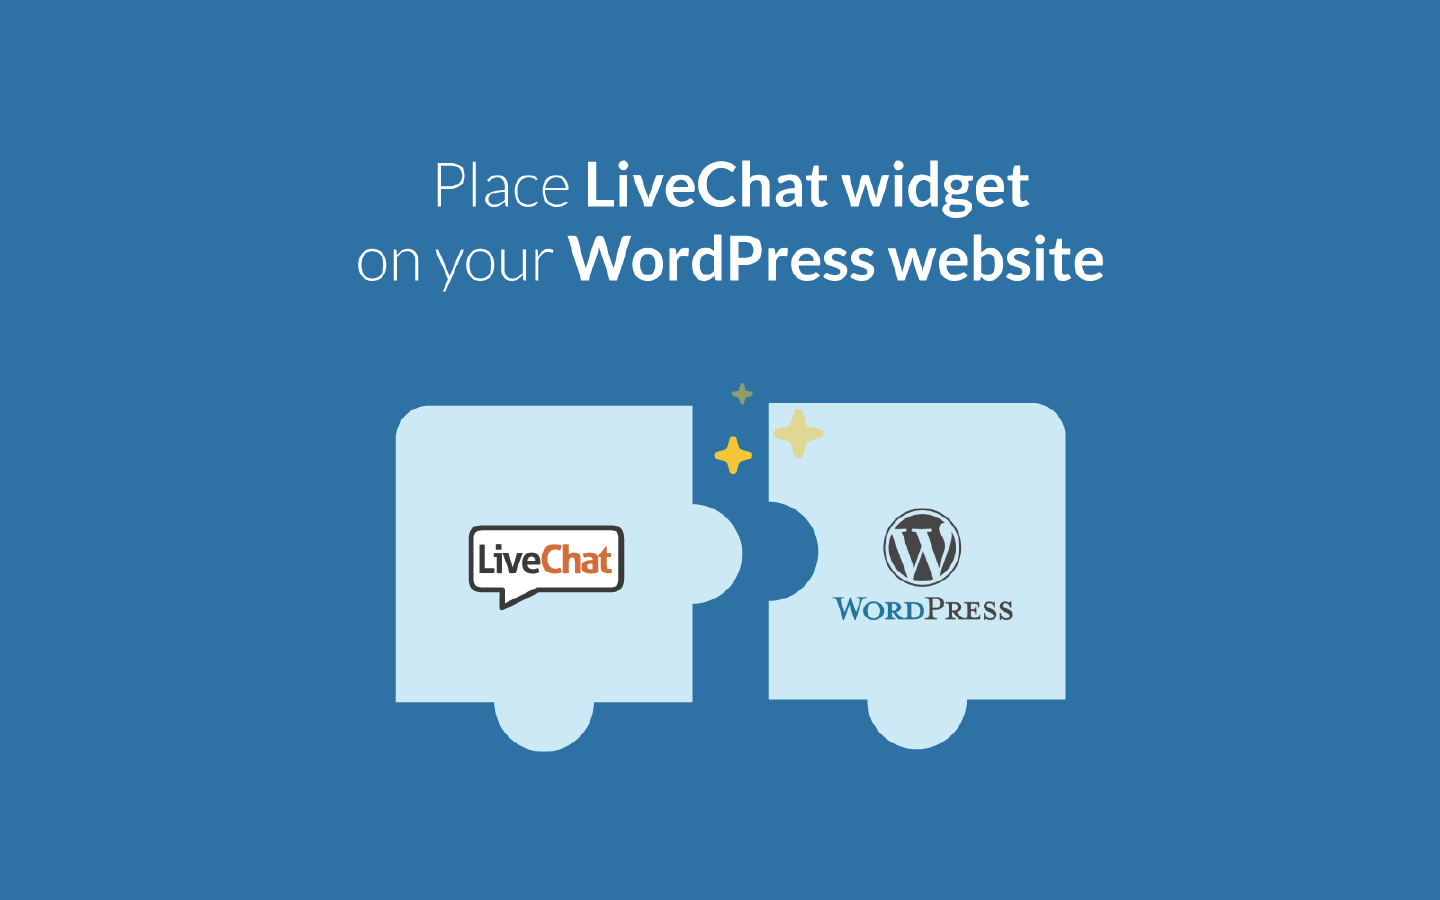 LiveChat integrates with Wordpress